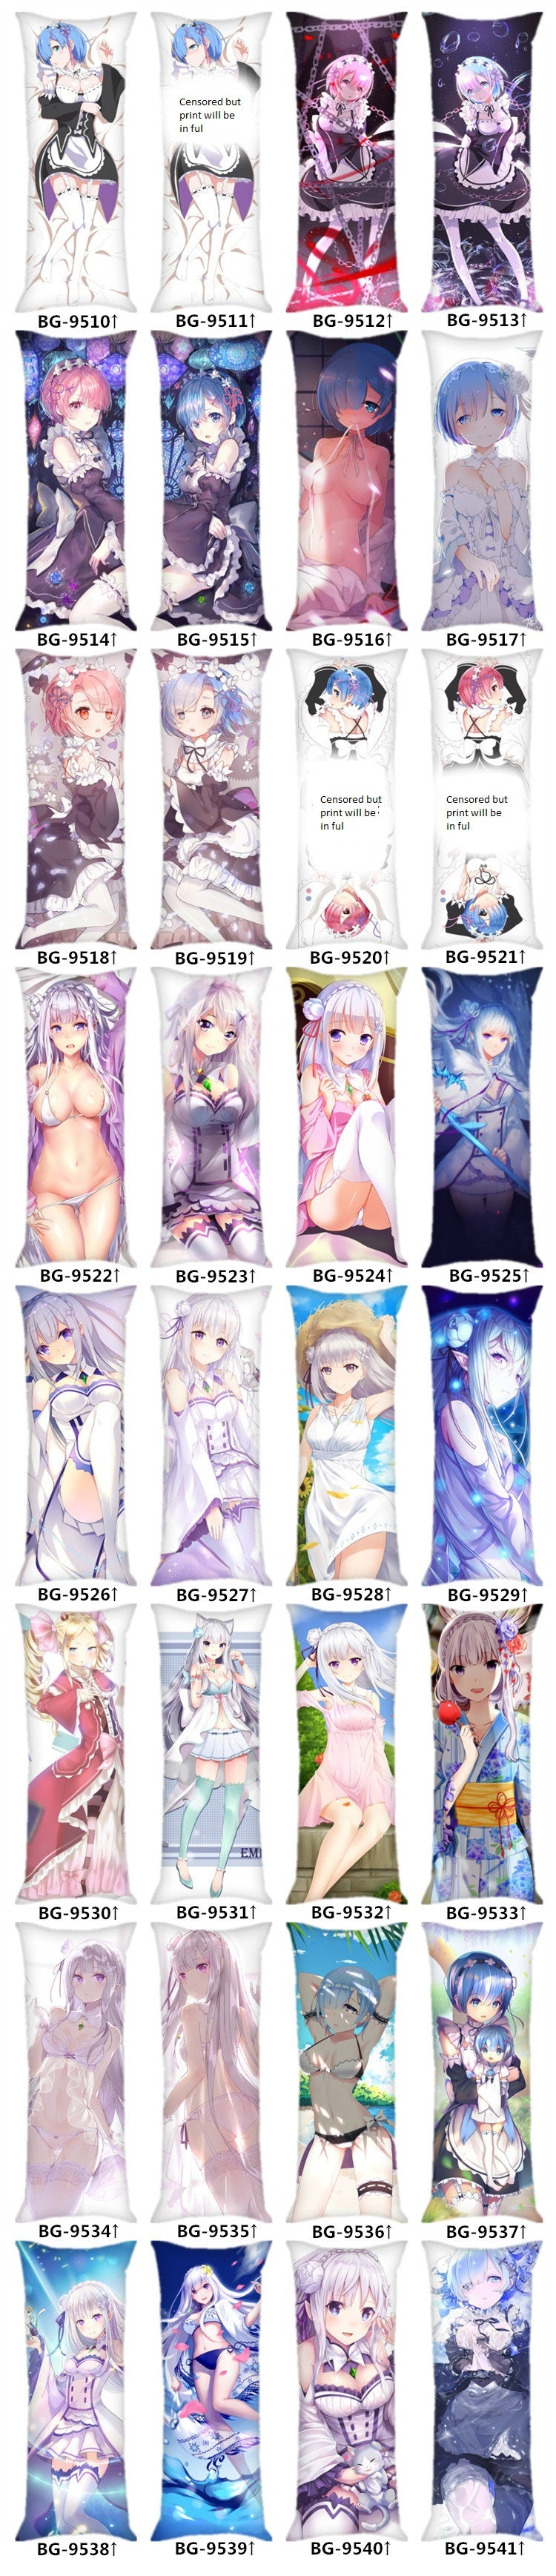 Rem Body Pillow, Re Zero Body Pillow